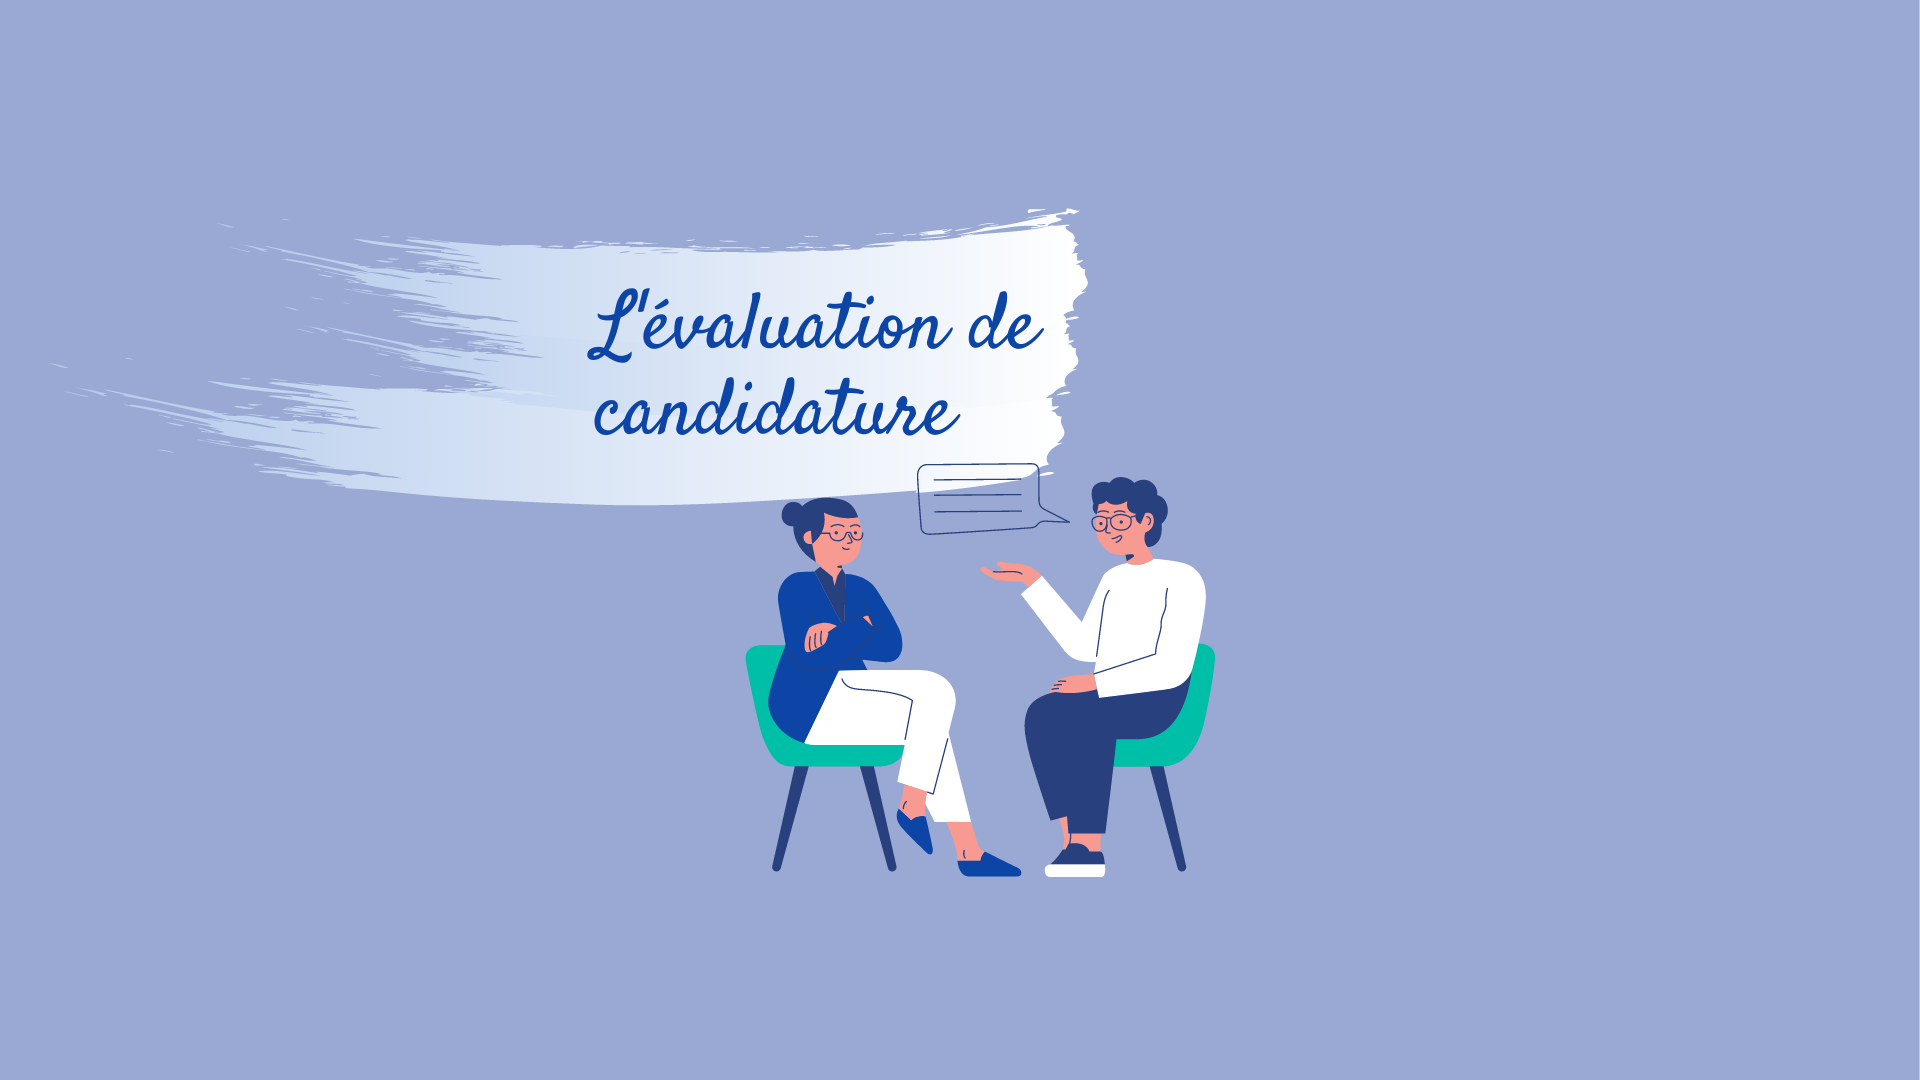 Evaluation de candidature